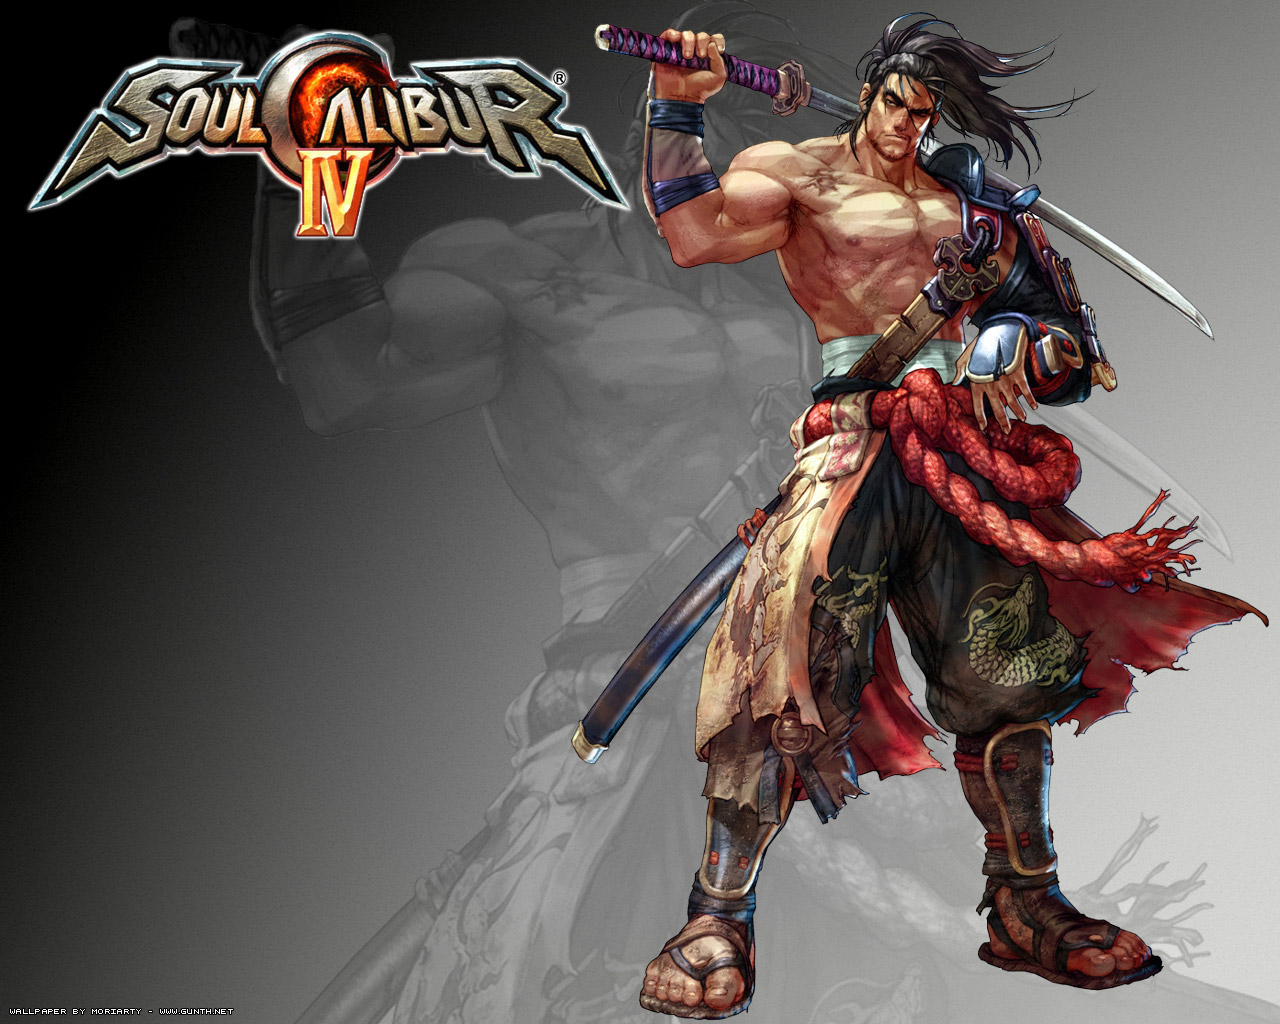 How to unlock all characters in soul calibur 4: 9 steps.